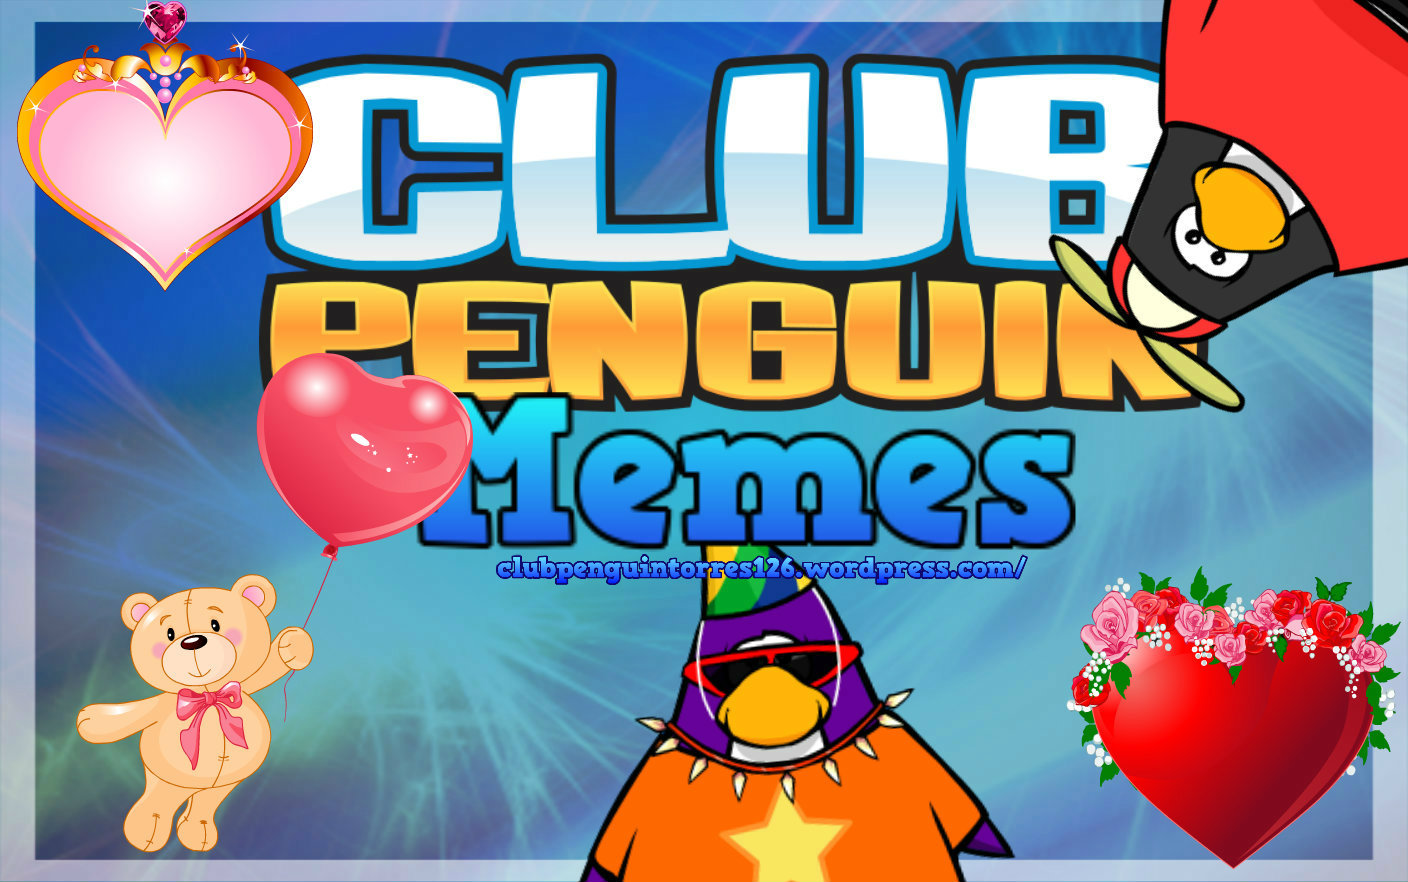 Club Penguin Memes Wish you a Valentine's Day!